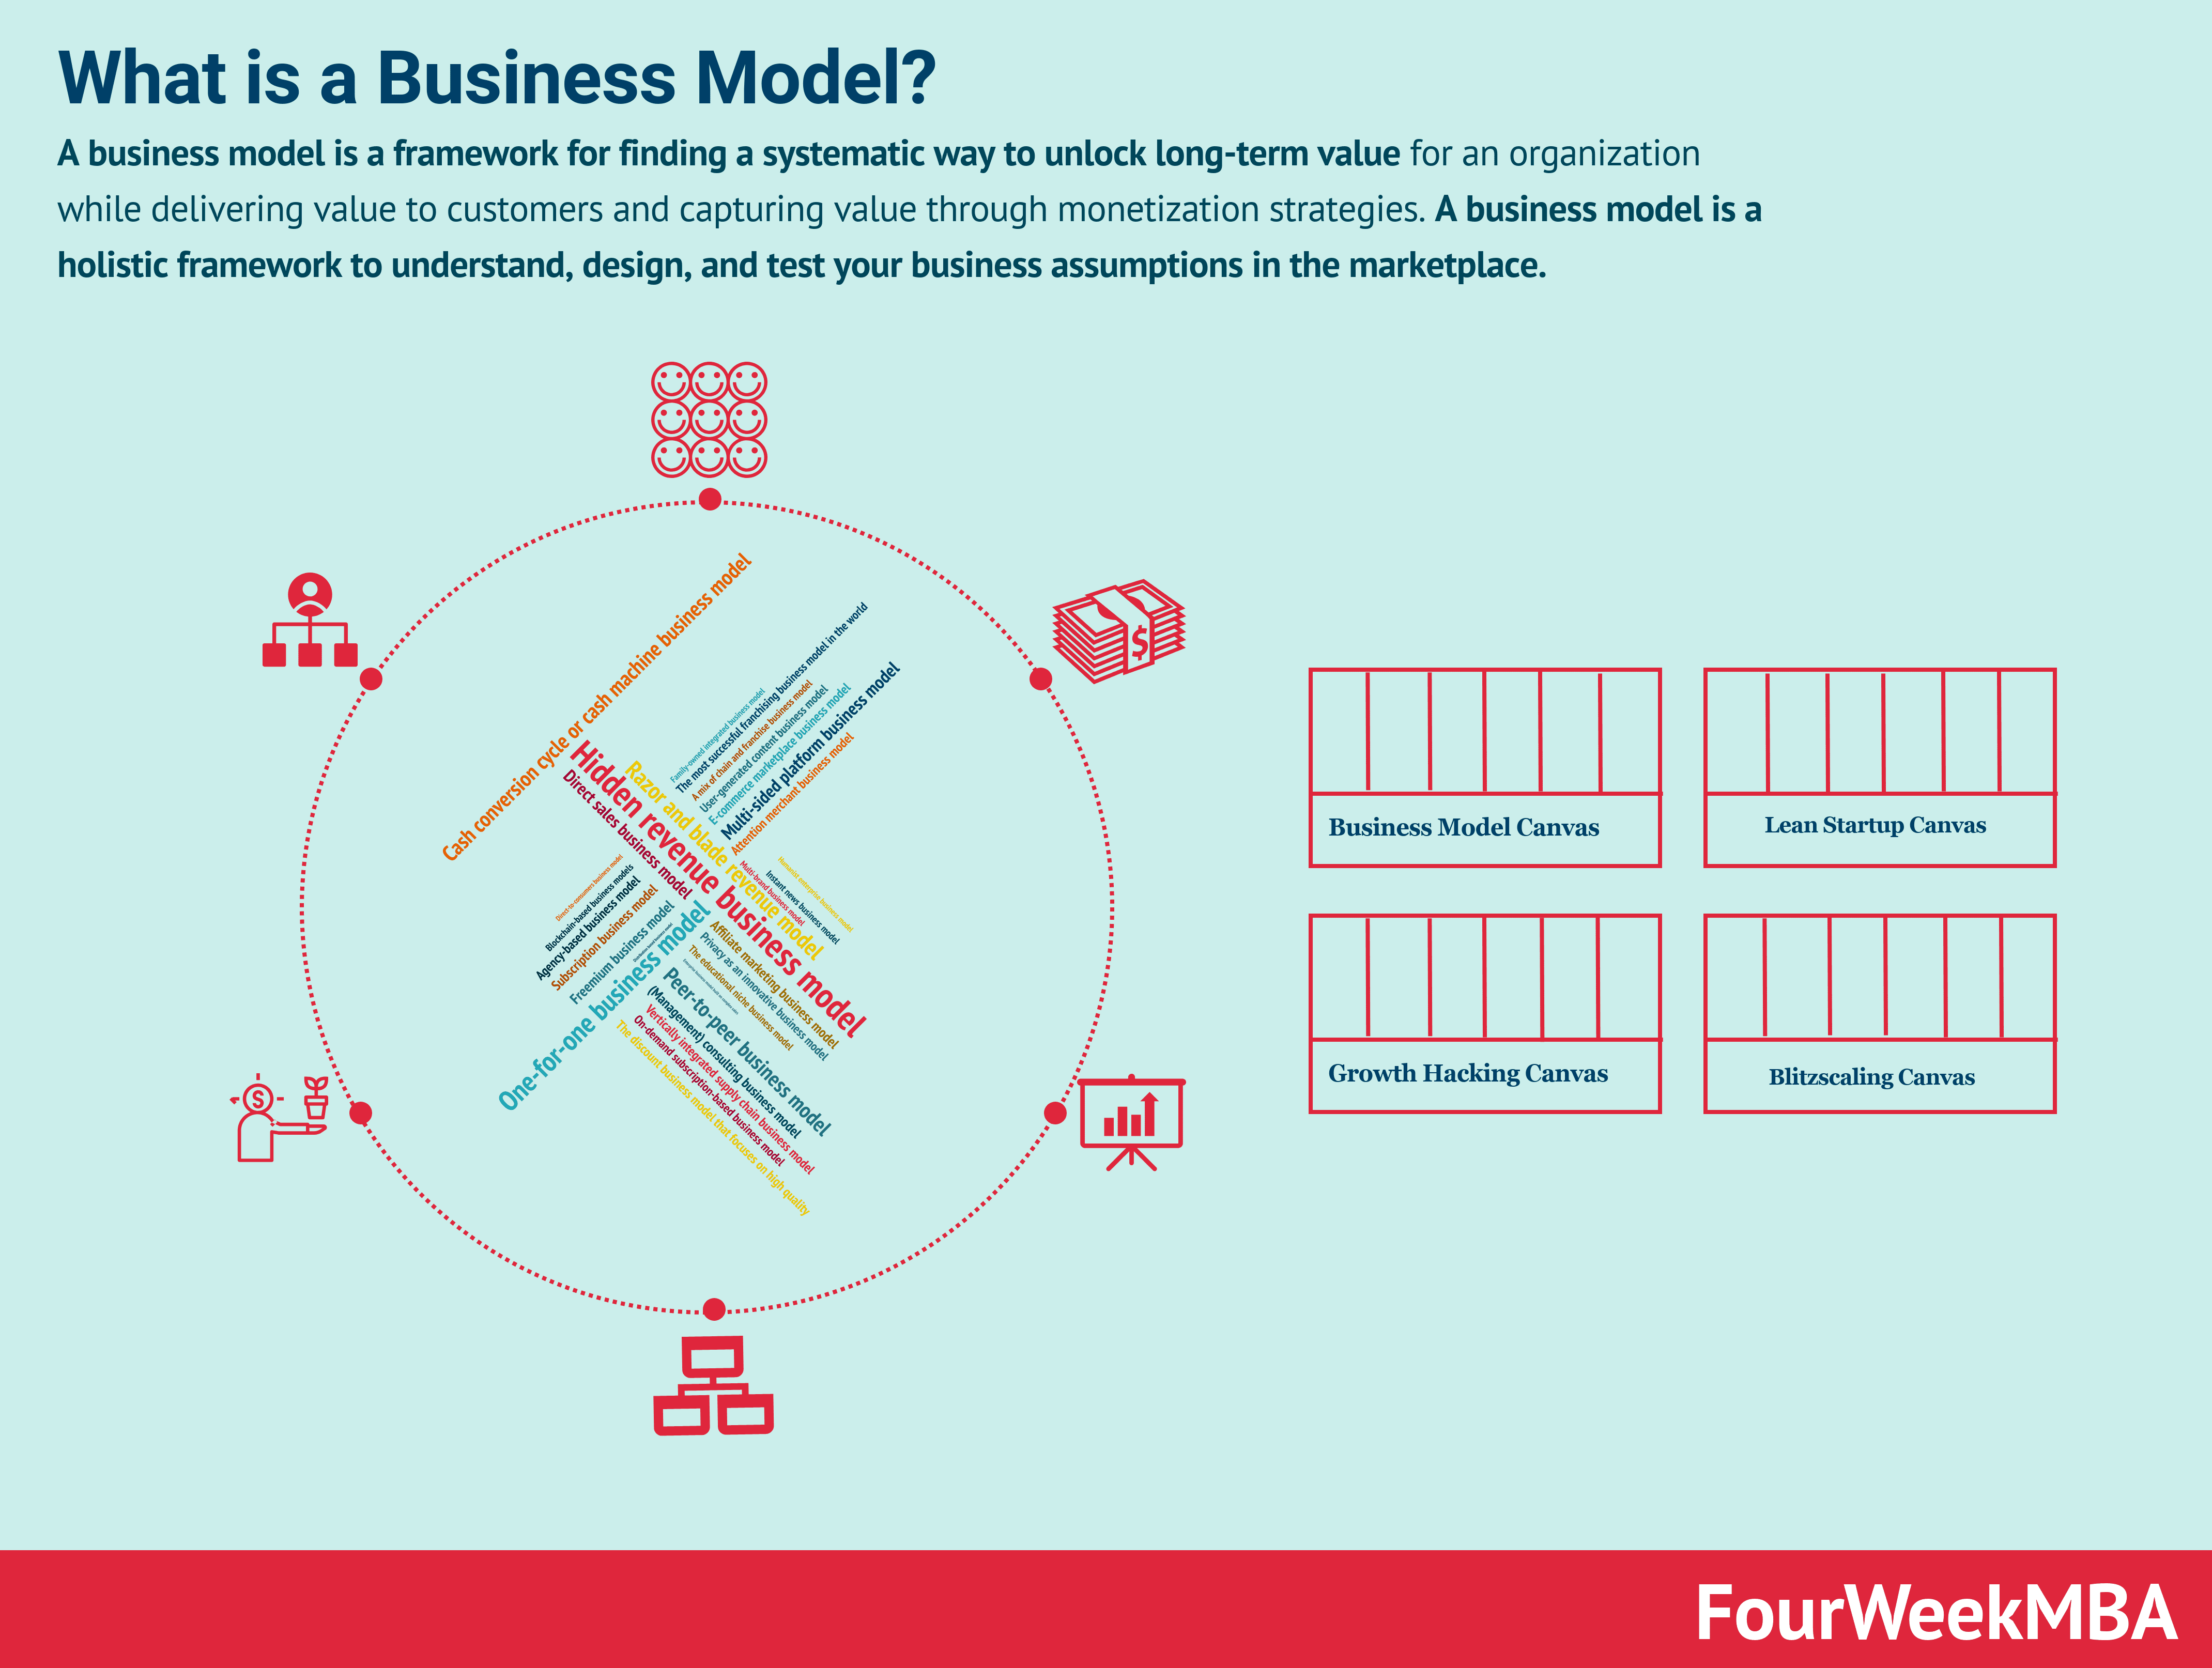 What Is a Business Model? 30 Successful Types of Business Models You Need to Know